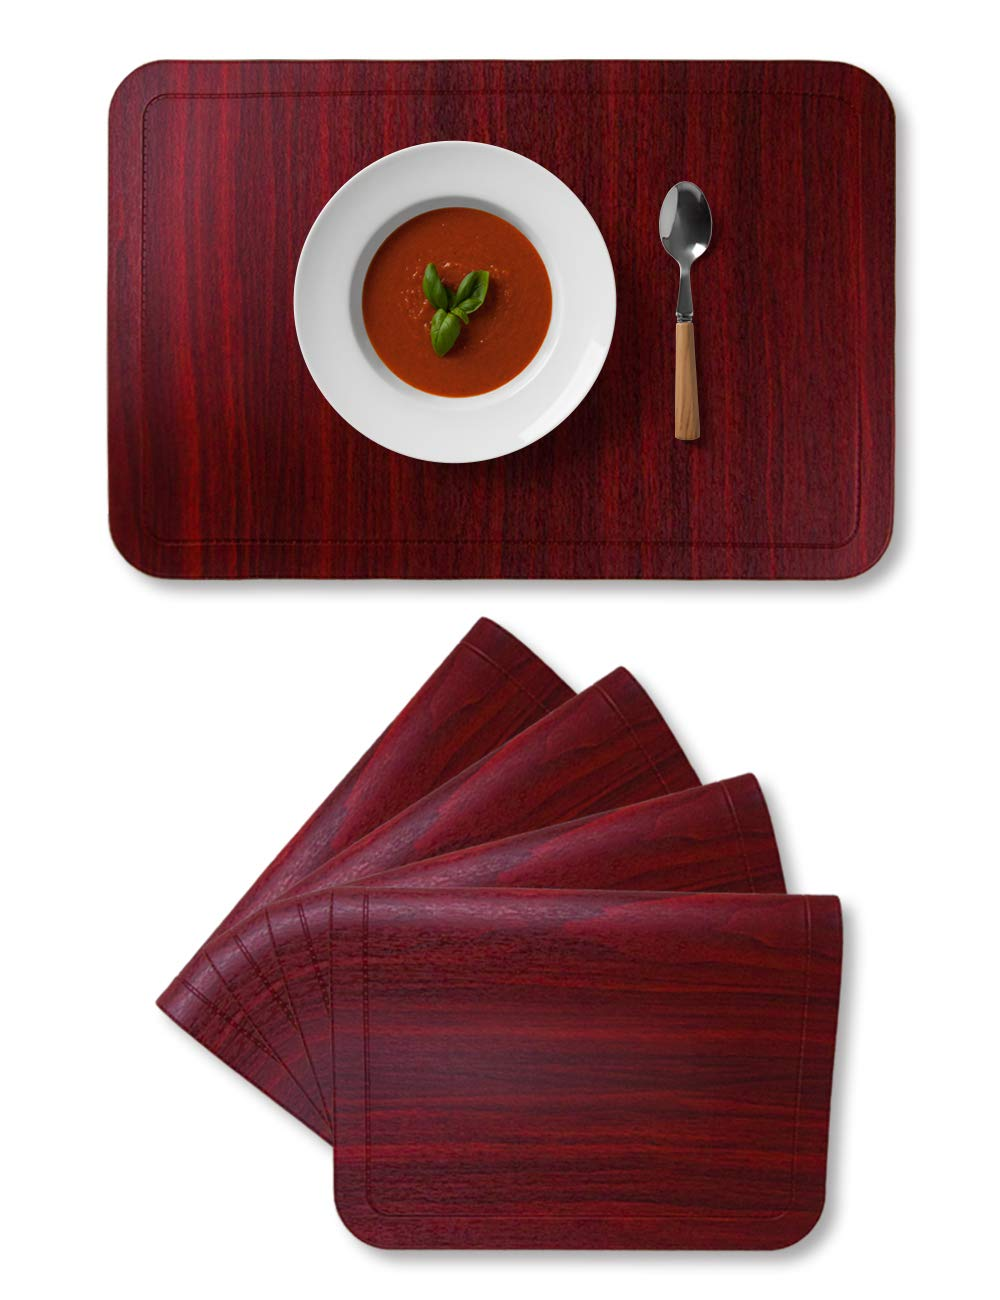 Alpiriral Dining PlaceMats Set of 4 Heat Resistant PlaceMats Easy to Wipe Off Scrub Vinyl Place Mats Washable Table Mats Protect A Table from Messes & with A Nice Looking in Cherry Red